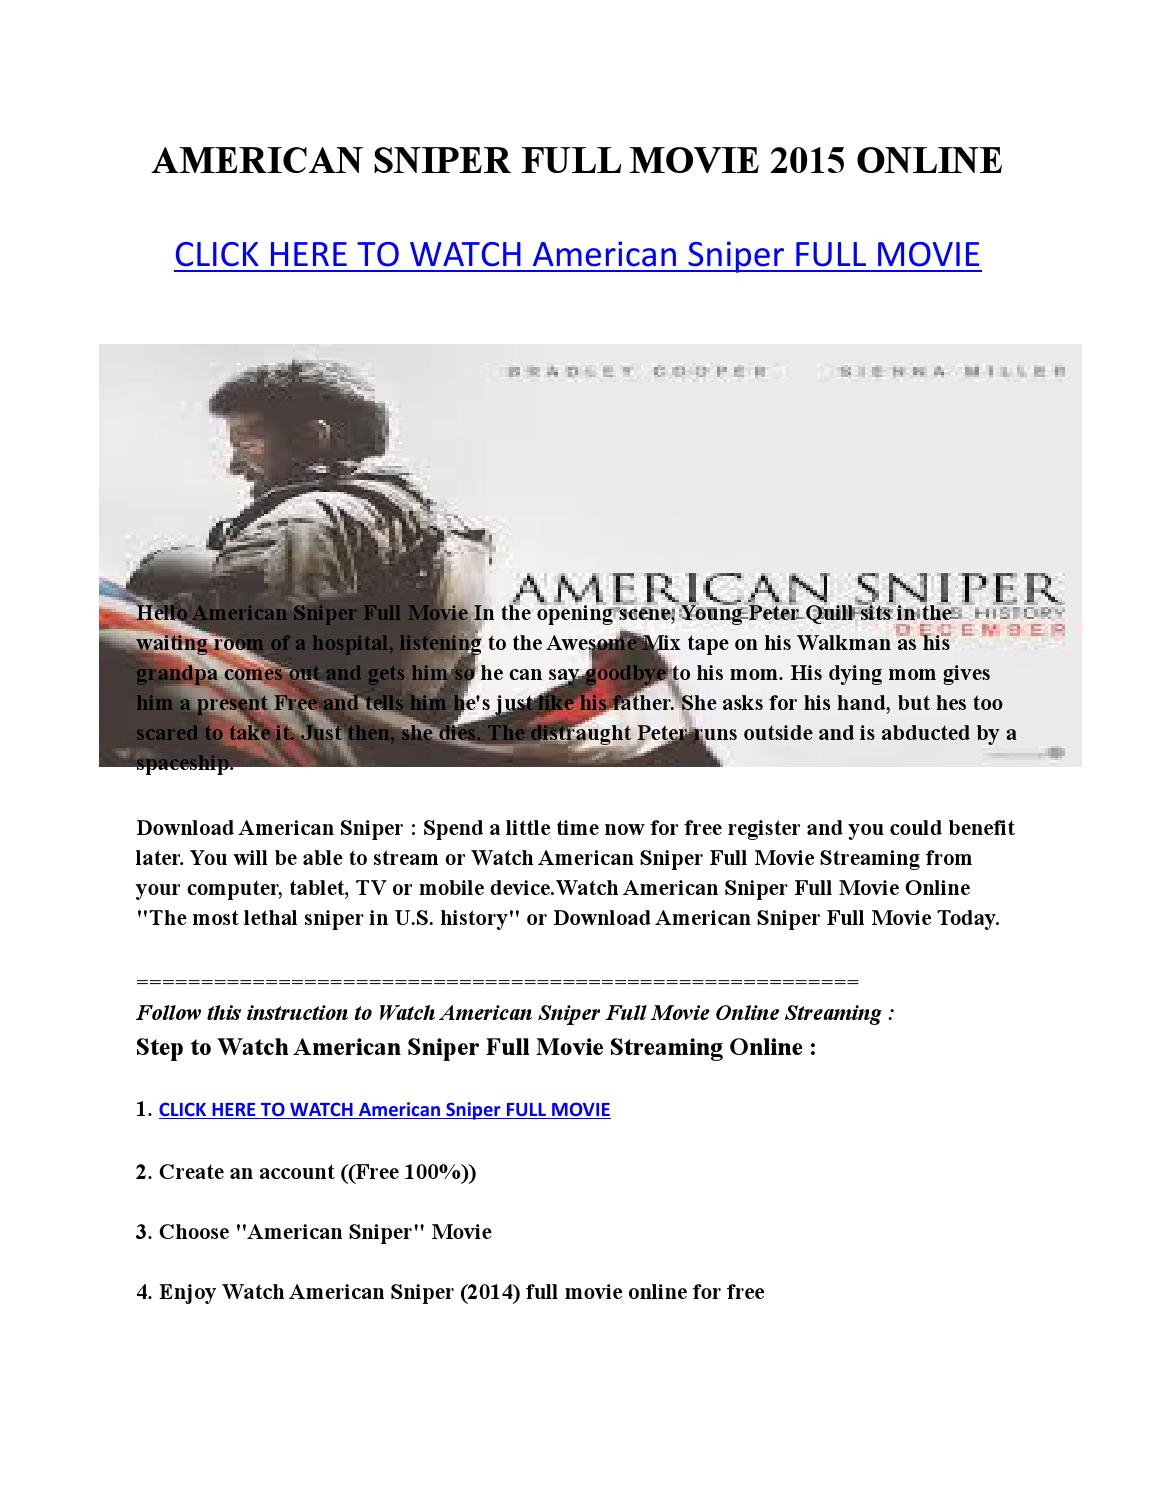 American Sniper Libro En Español Issuu American Sniper Full Movie 2015 Online By Fadly